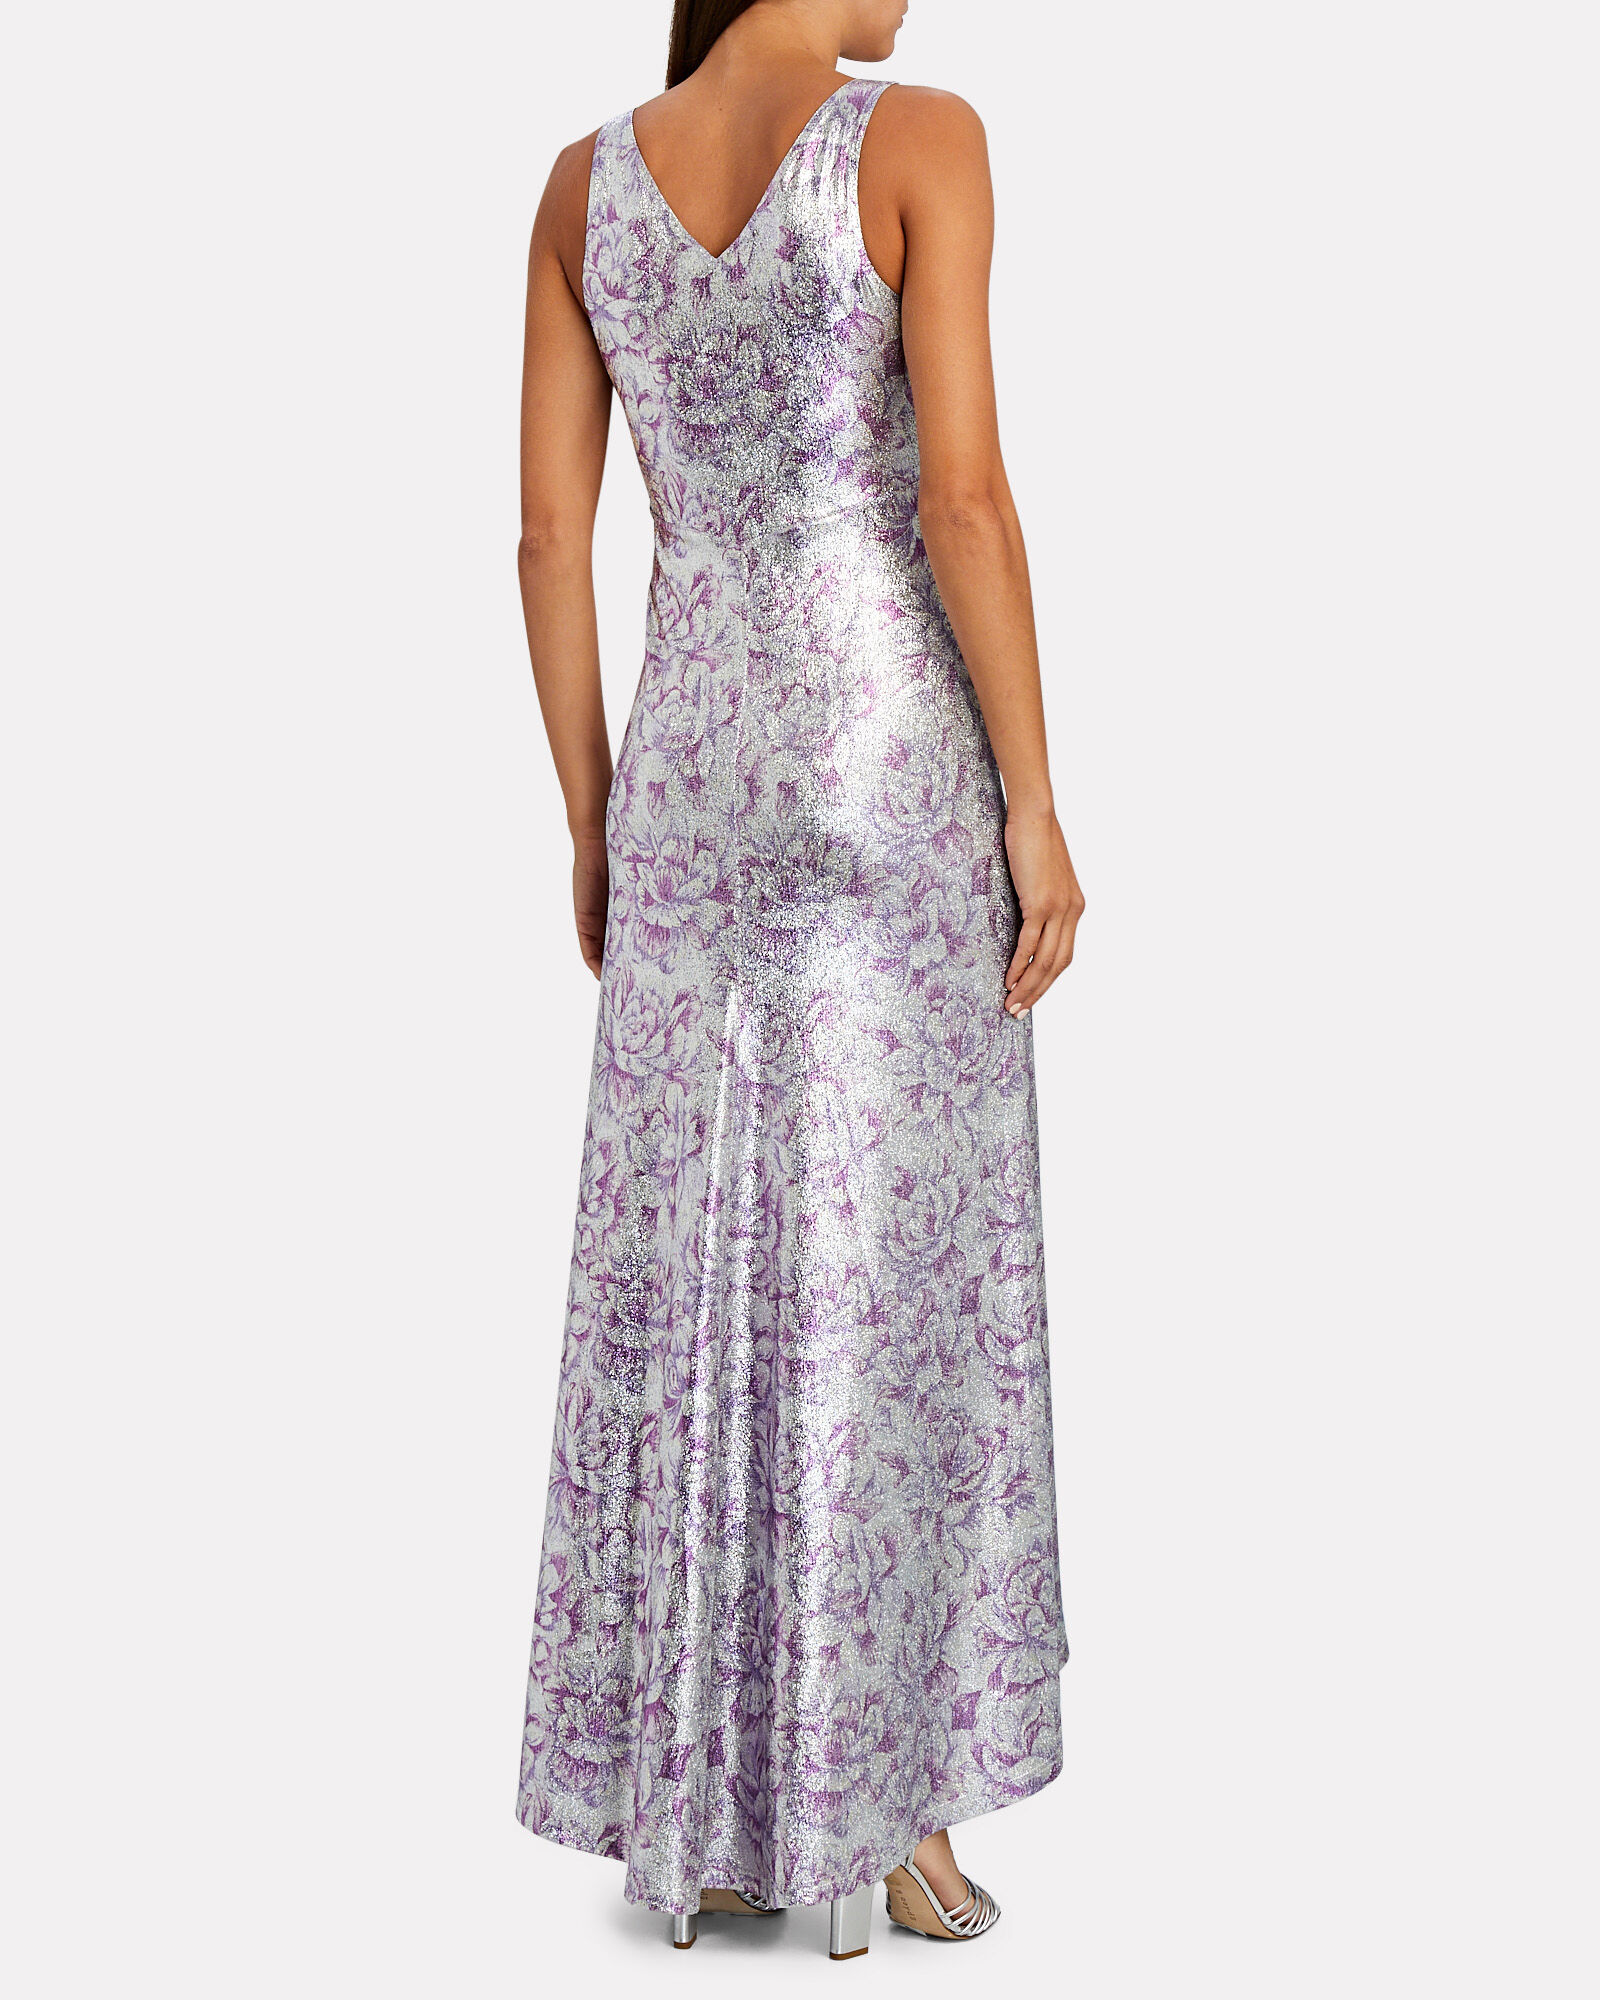 Lurex Floral Sleeveless Maxi Dress, SILVER/PURPLE, hi-res